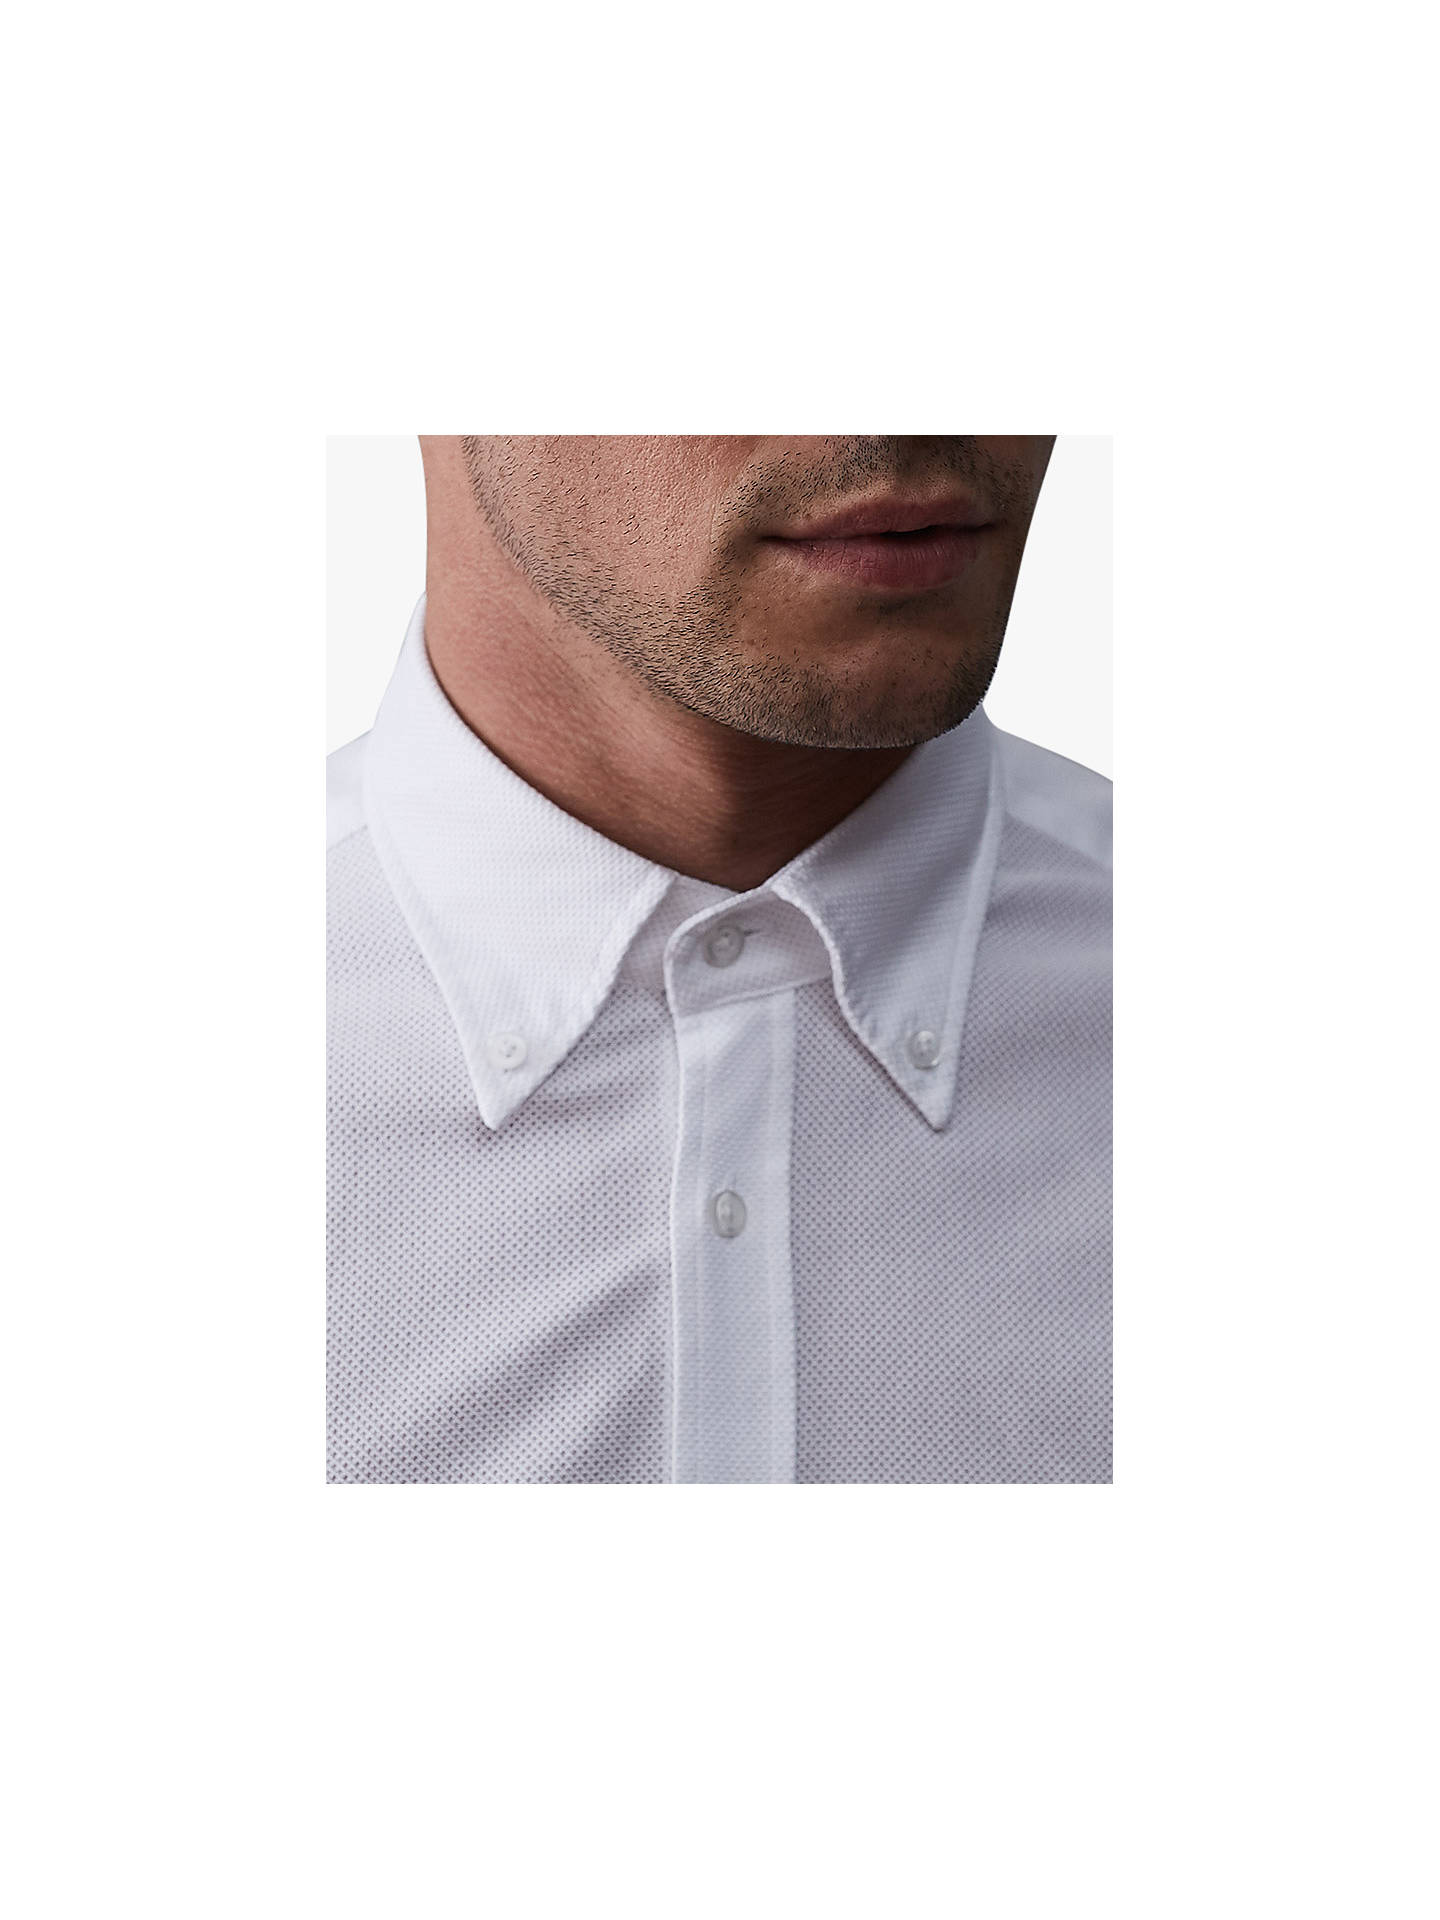 BuyReiss Halliday Textured Slim Fit Shirt, White, S Online at johnlewis.com